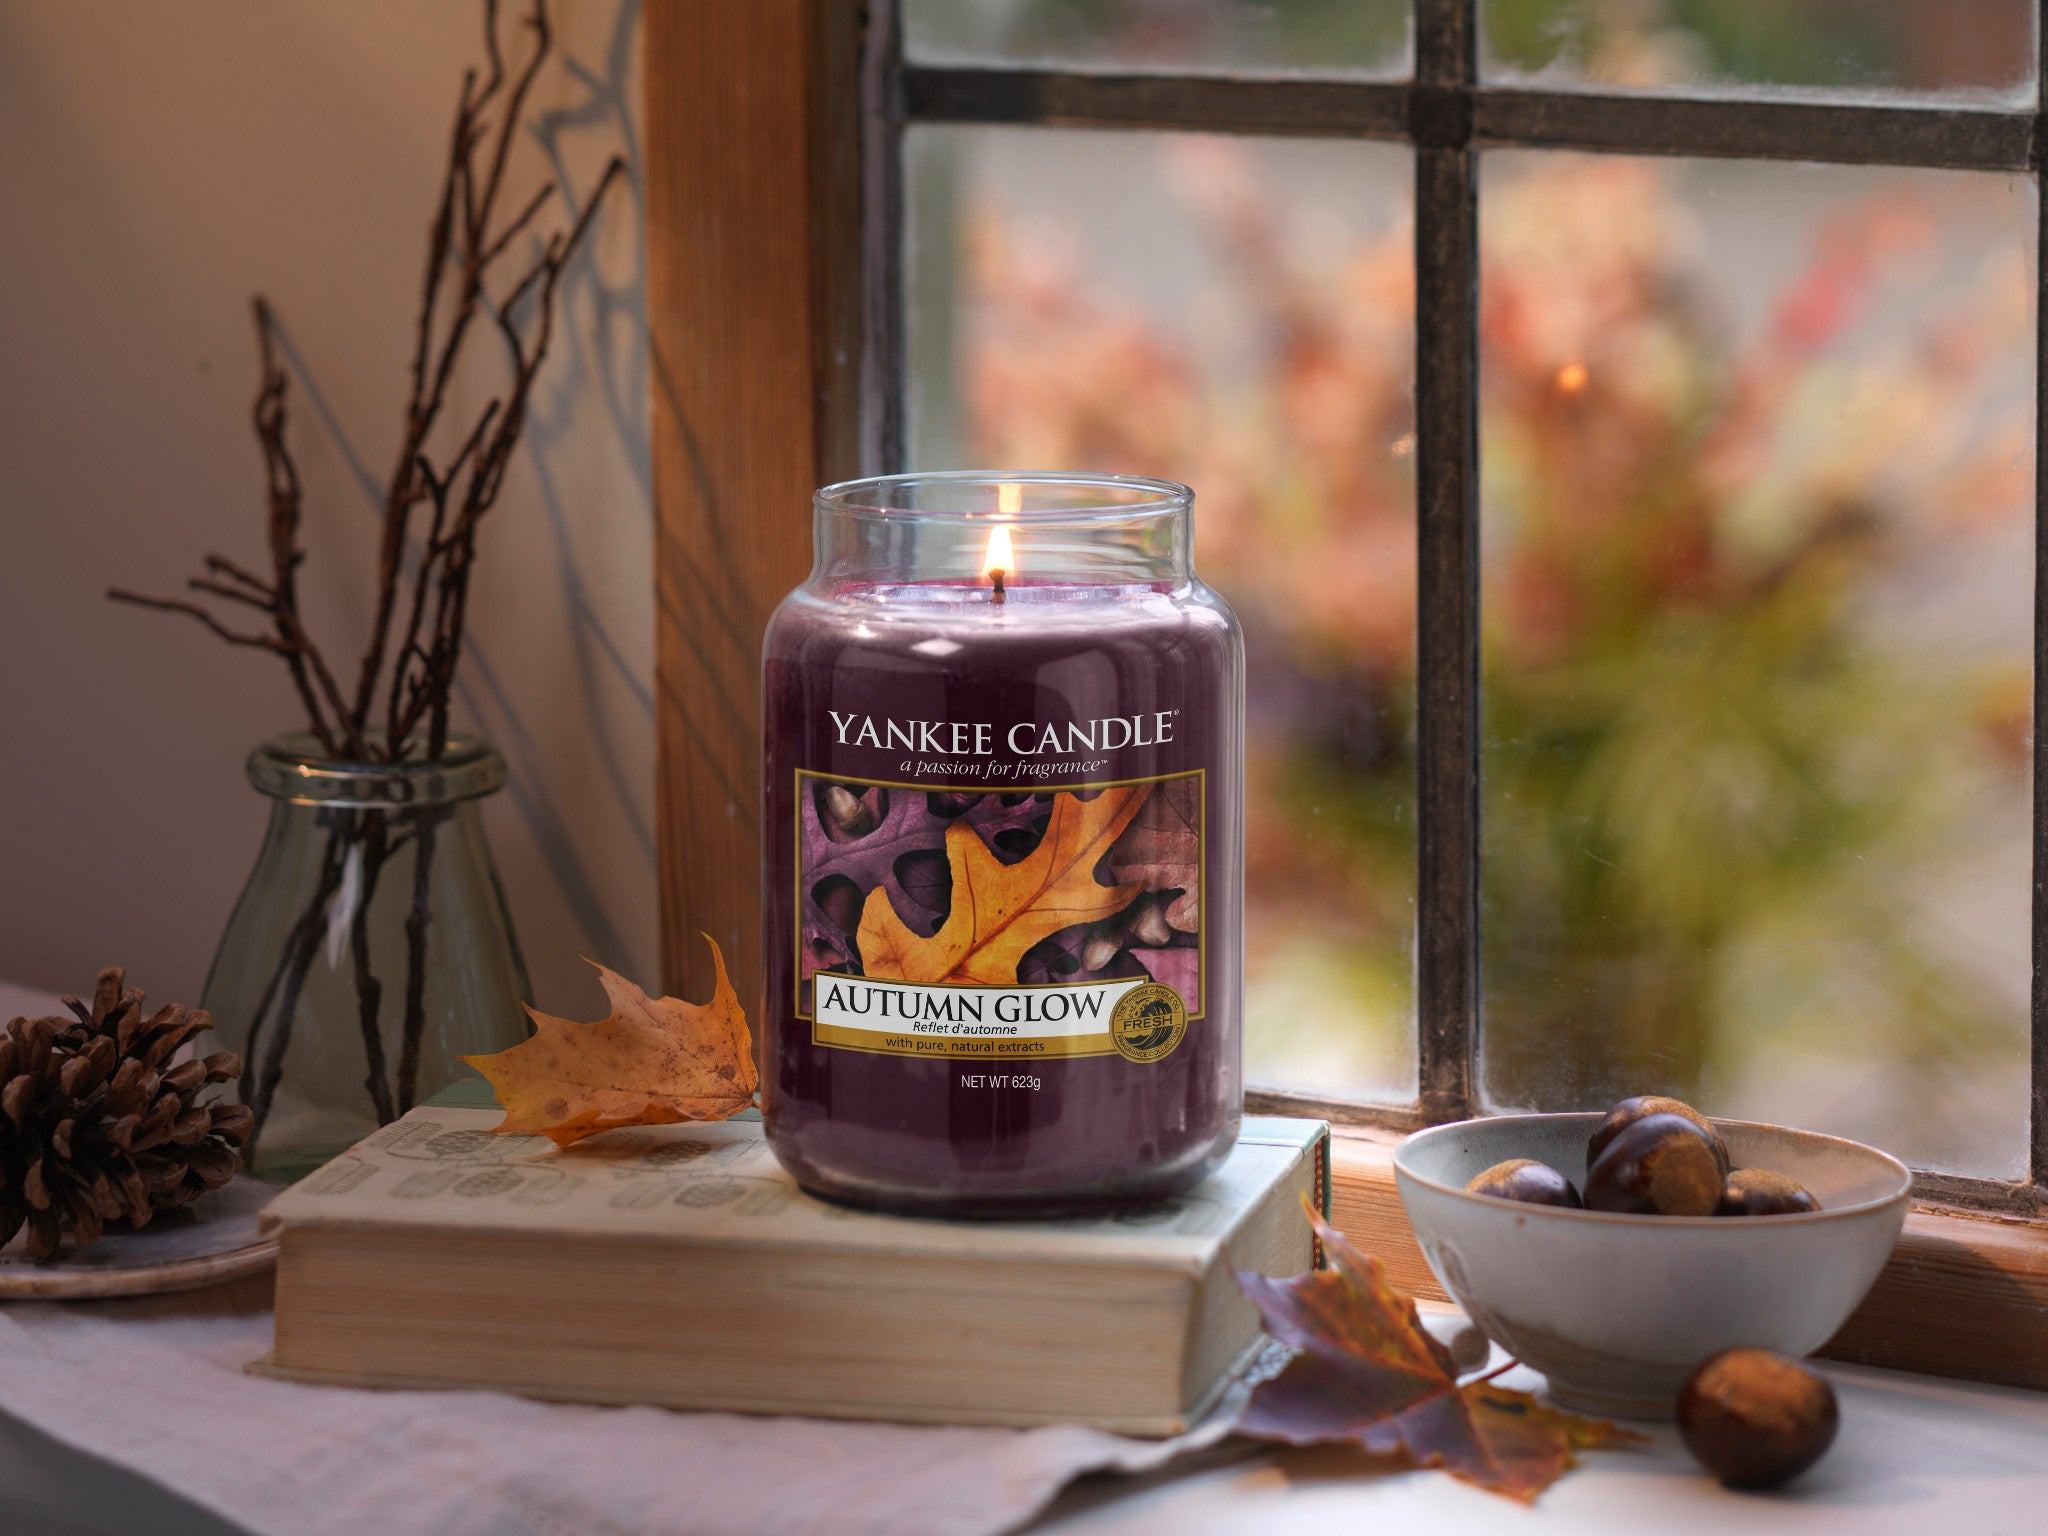 AUTUMN GLOW -Yankee Candle- Tea Light